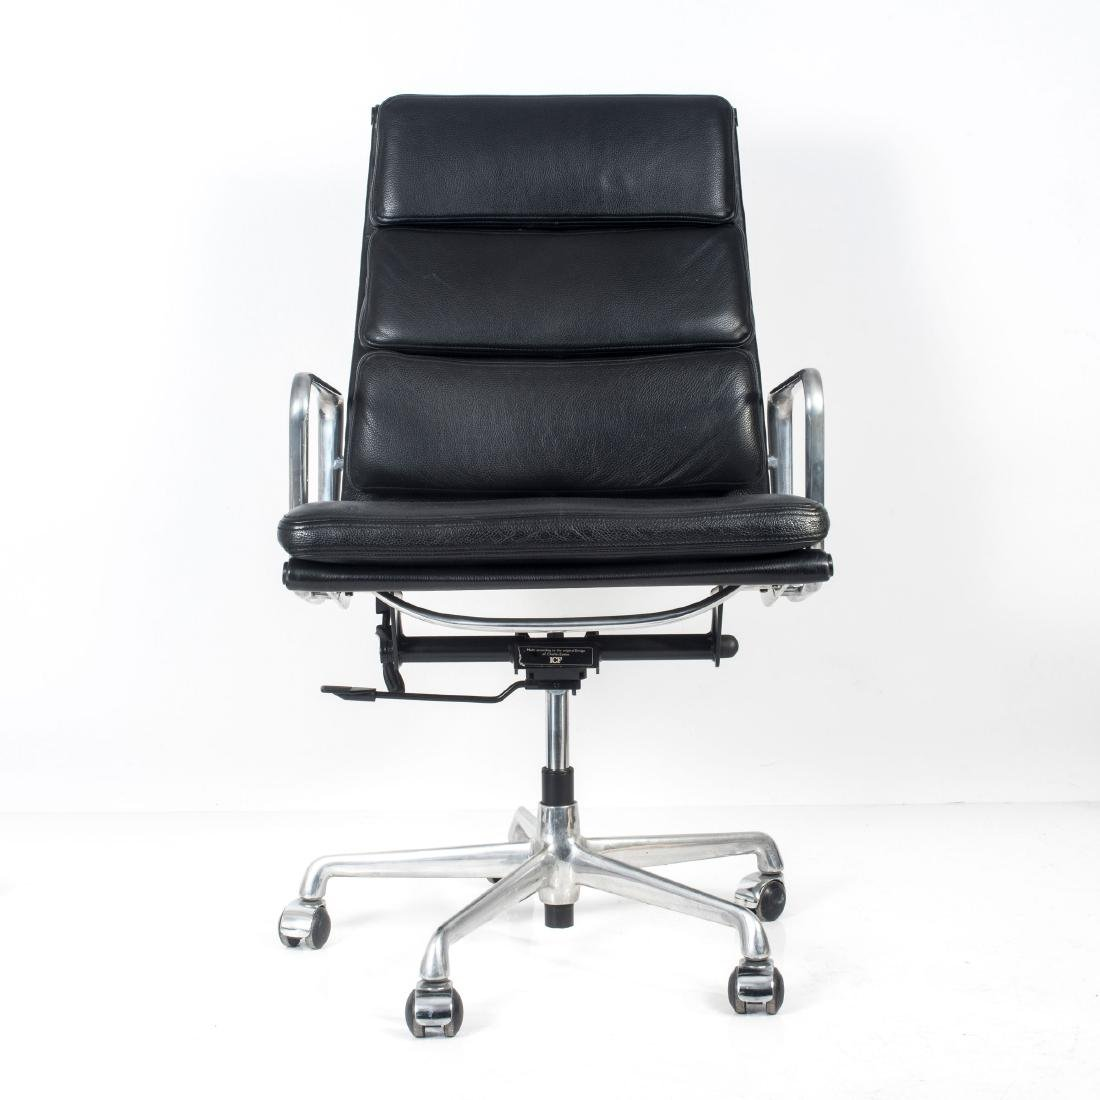 'Soft Pad Group Swivel chair with side arms', 1969 - 2